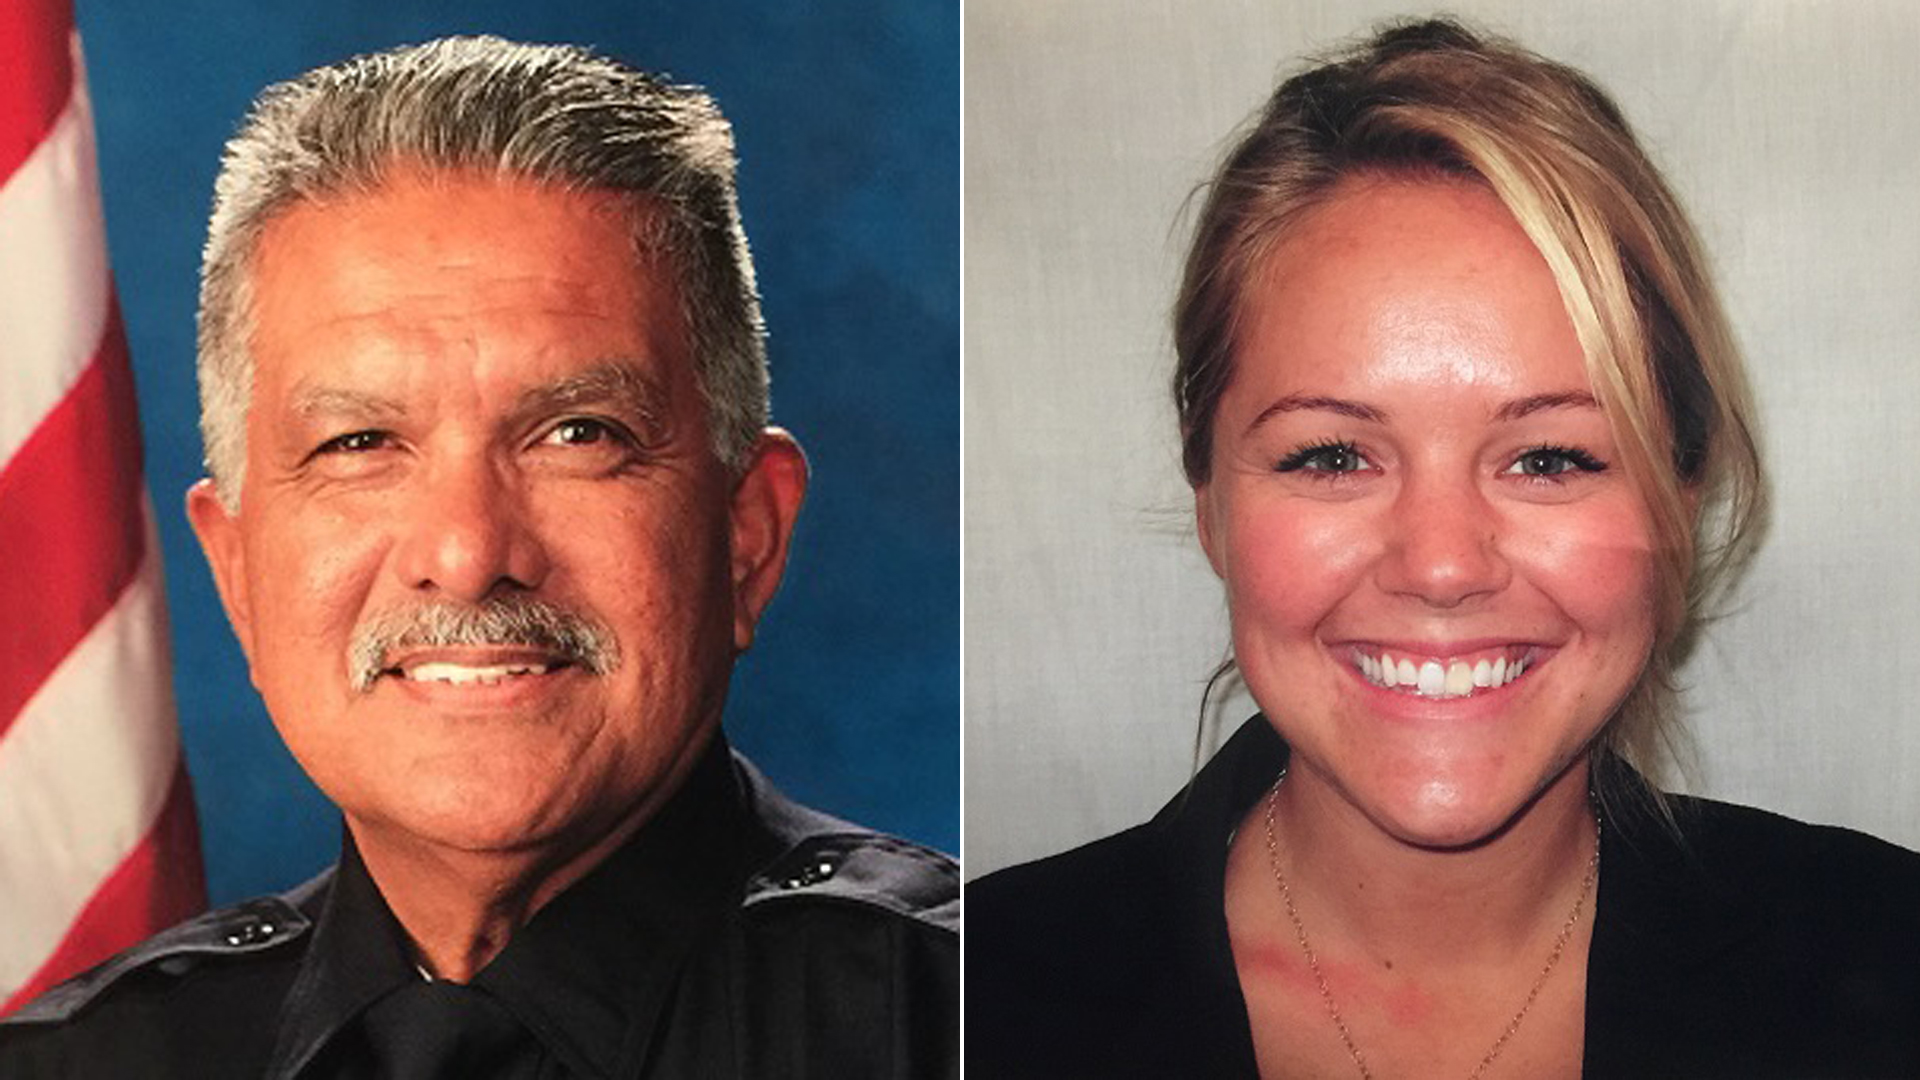 Photos of slain officers Jose Gilbert Vega, left, and Lesley Zerebny were released by the Palm Springs Police Department on Oct. 8, 2016.